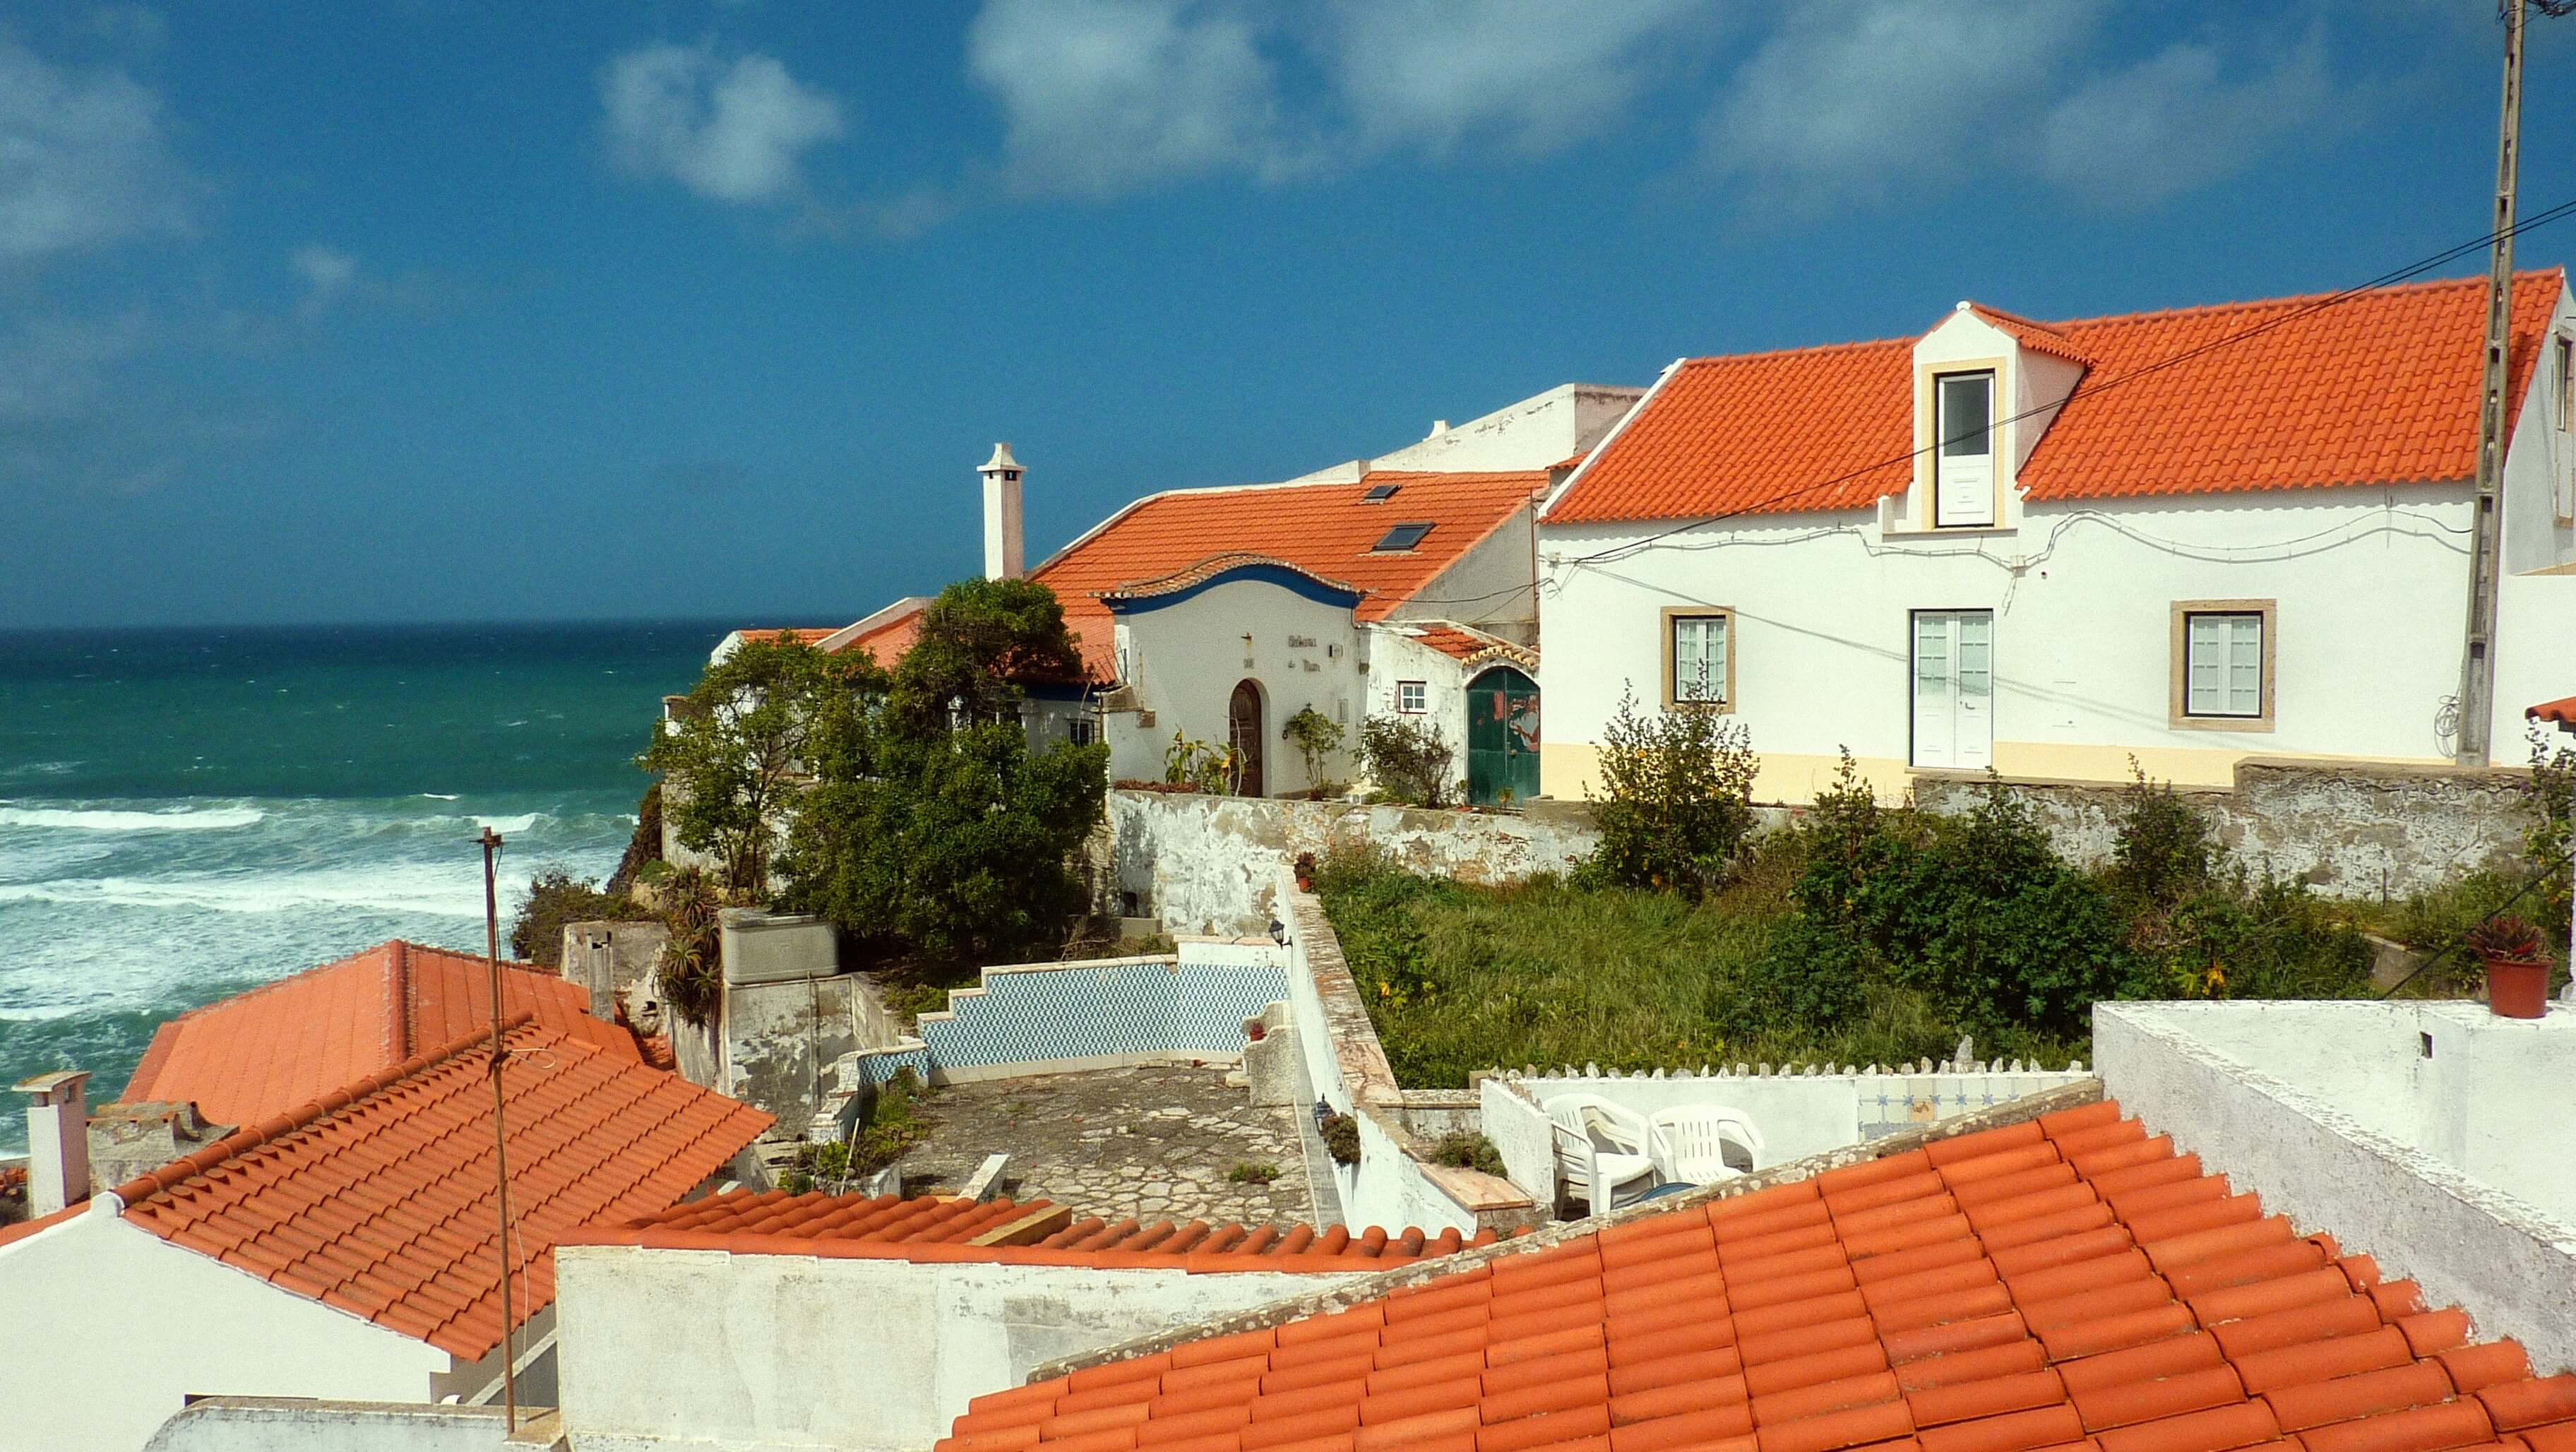 Azenhas do Mar, Portugal (le village)